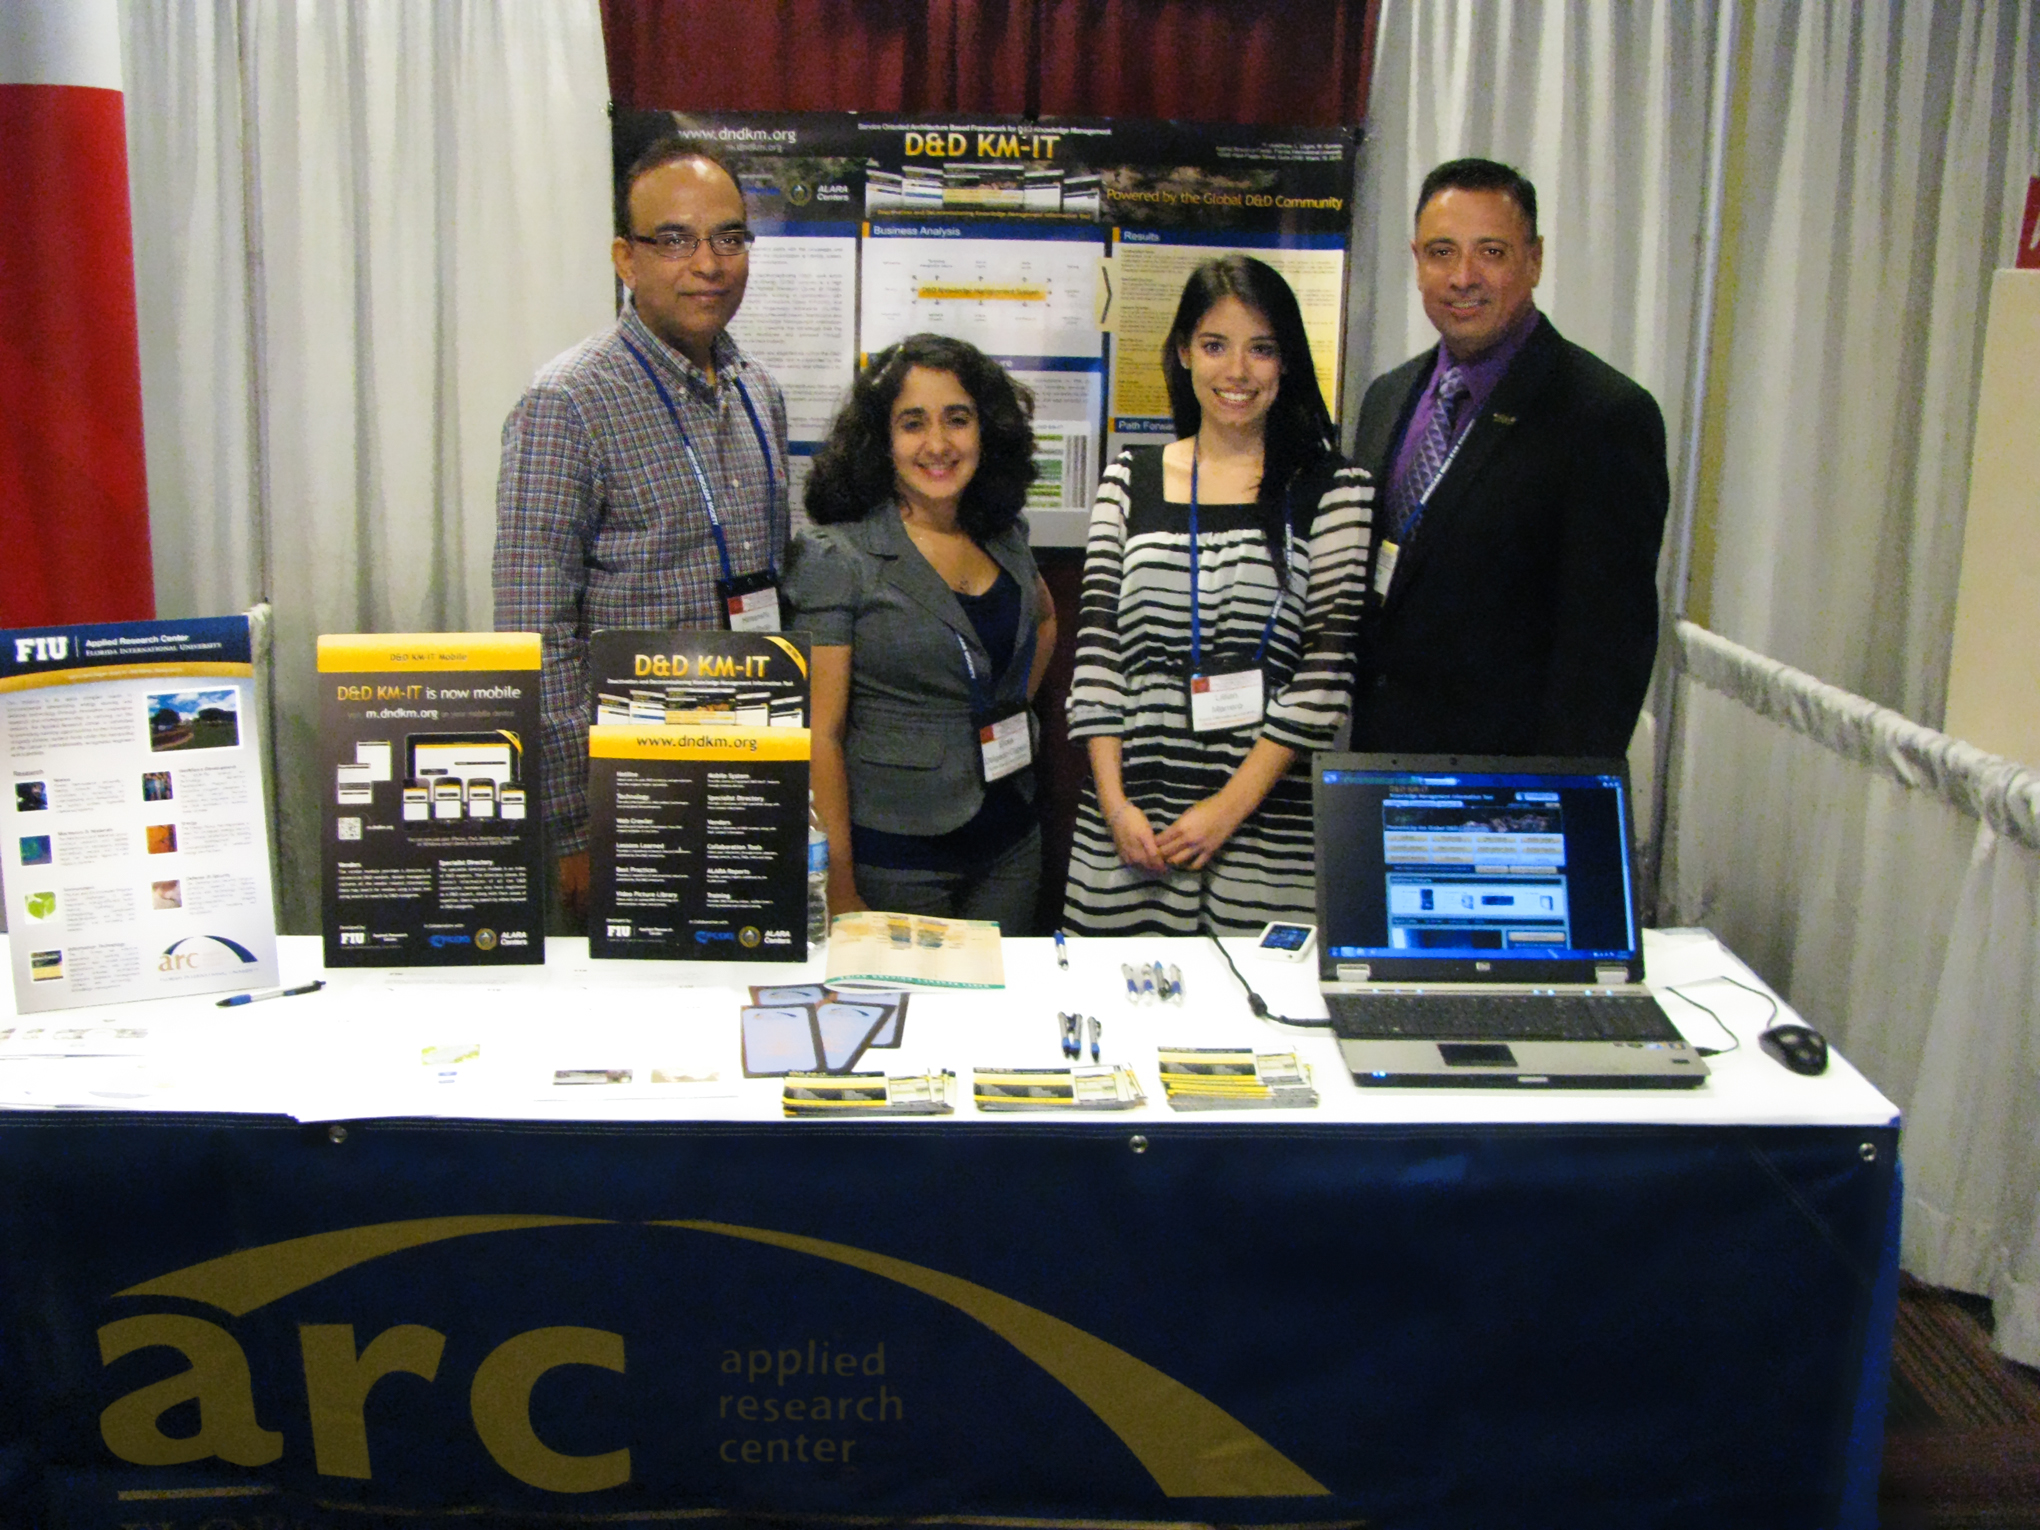 ARC Booth at DD&R 2012. From left, Himanshu Upadhyay, DOE Fellows (Elicek Delgado-Cepero and Lilian Marrero) and Program Director, Dr. Leonel Lagos